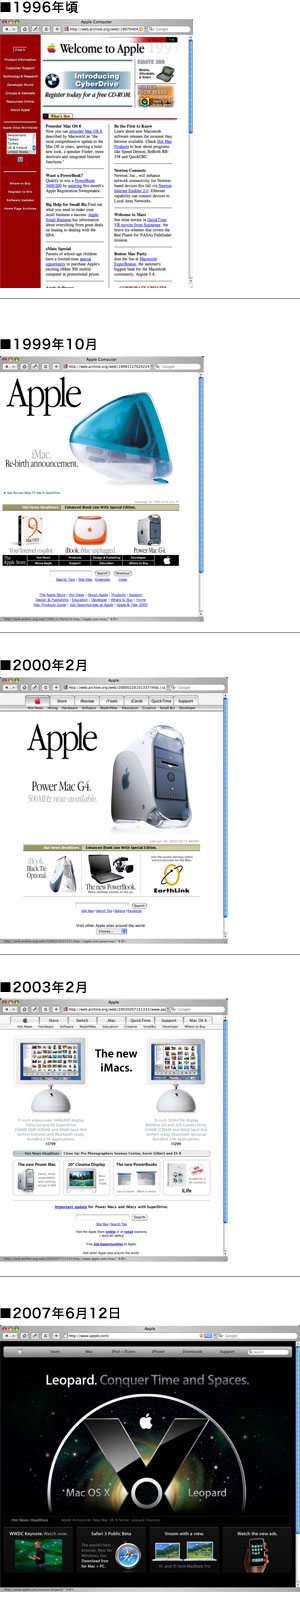 070612apple-web.jpg